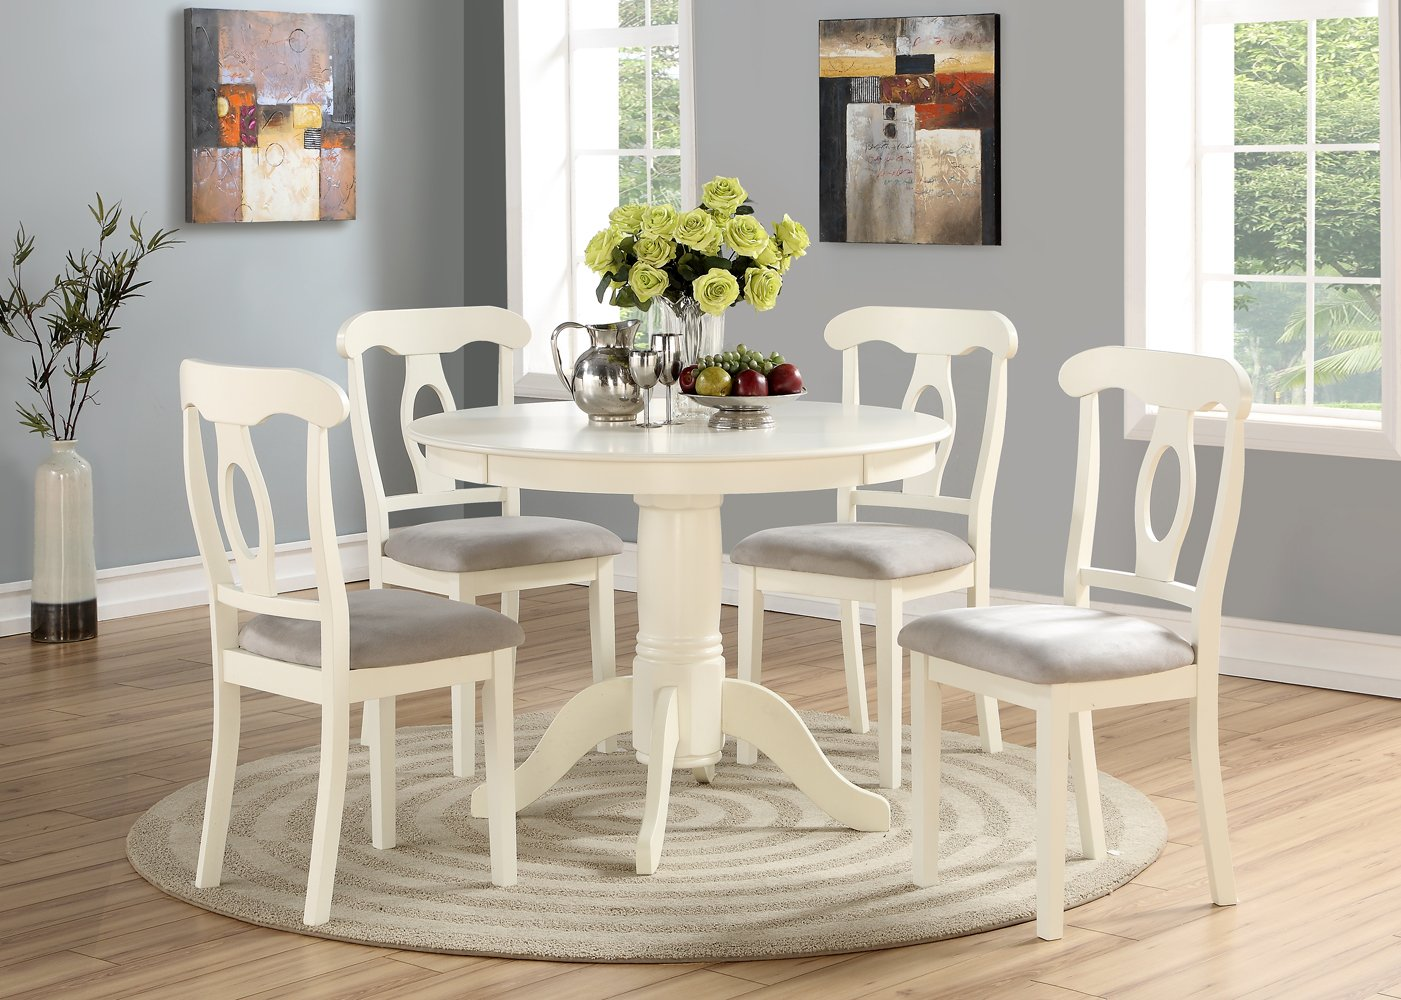 Angel Line 23511-21 5 Piece Lindsey Dining Set, White/Gray by Angel Line